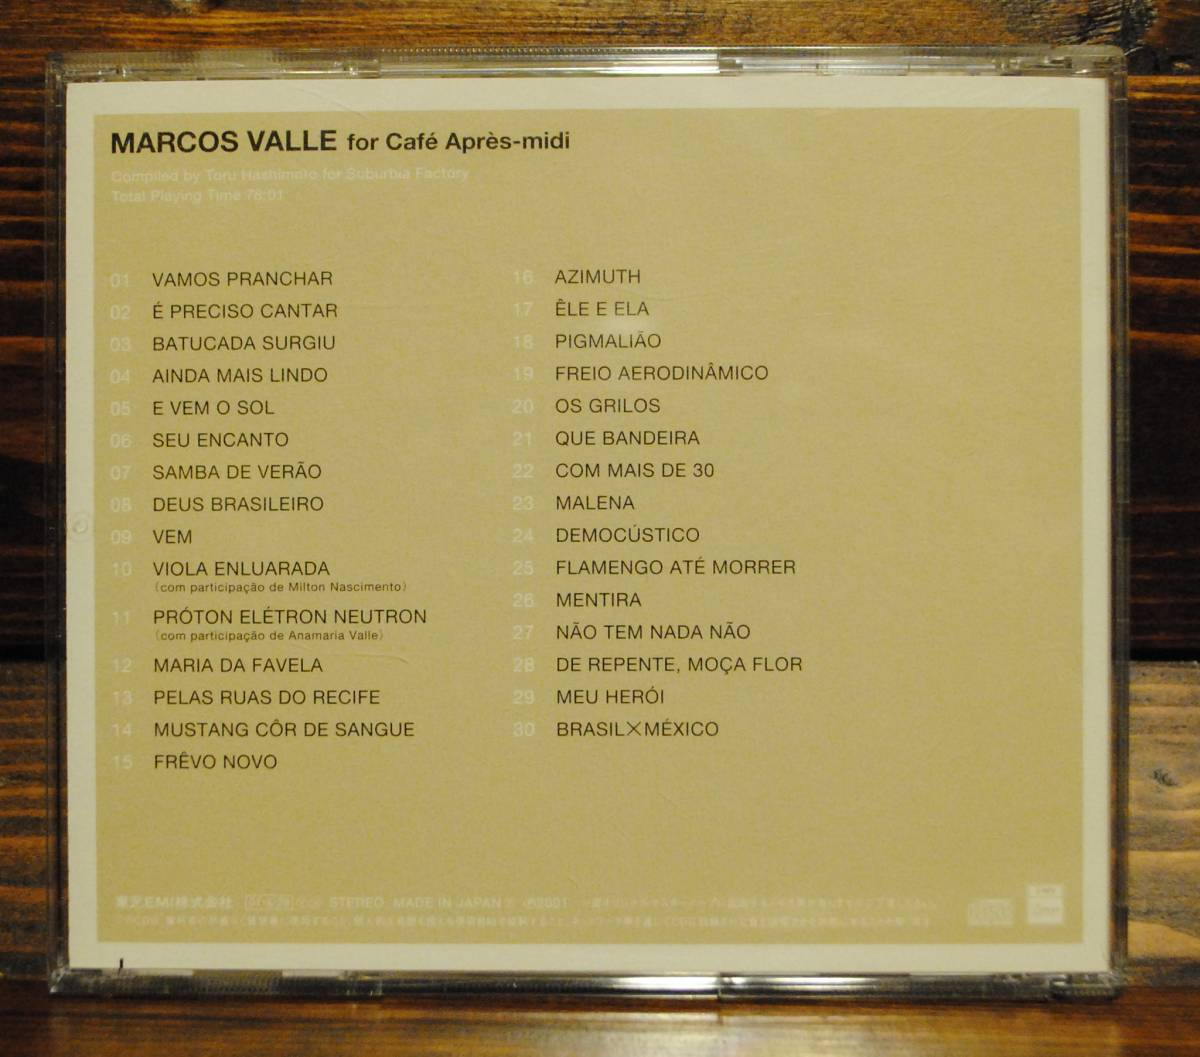 ●CD● MARCOS VALLE for Cafe Apres-midi / 2001年 国内盤 / 橋本徹 / Free soul / サバービア / カフェアプレミディ / 送料_画像2